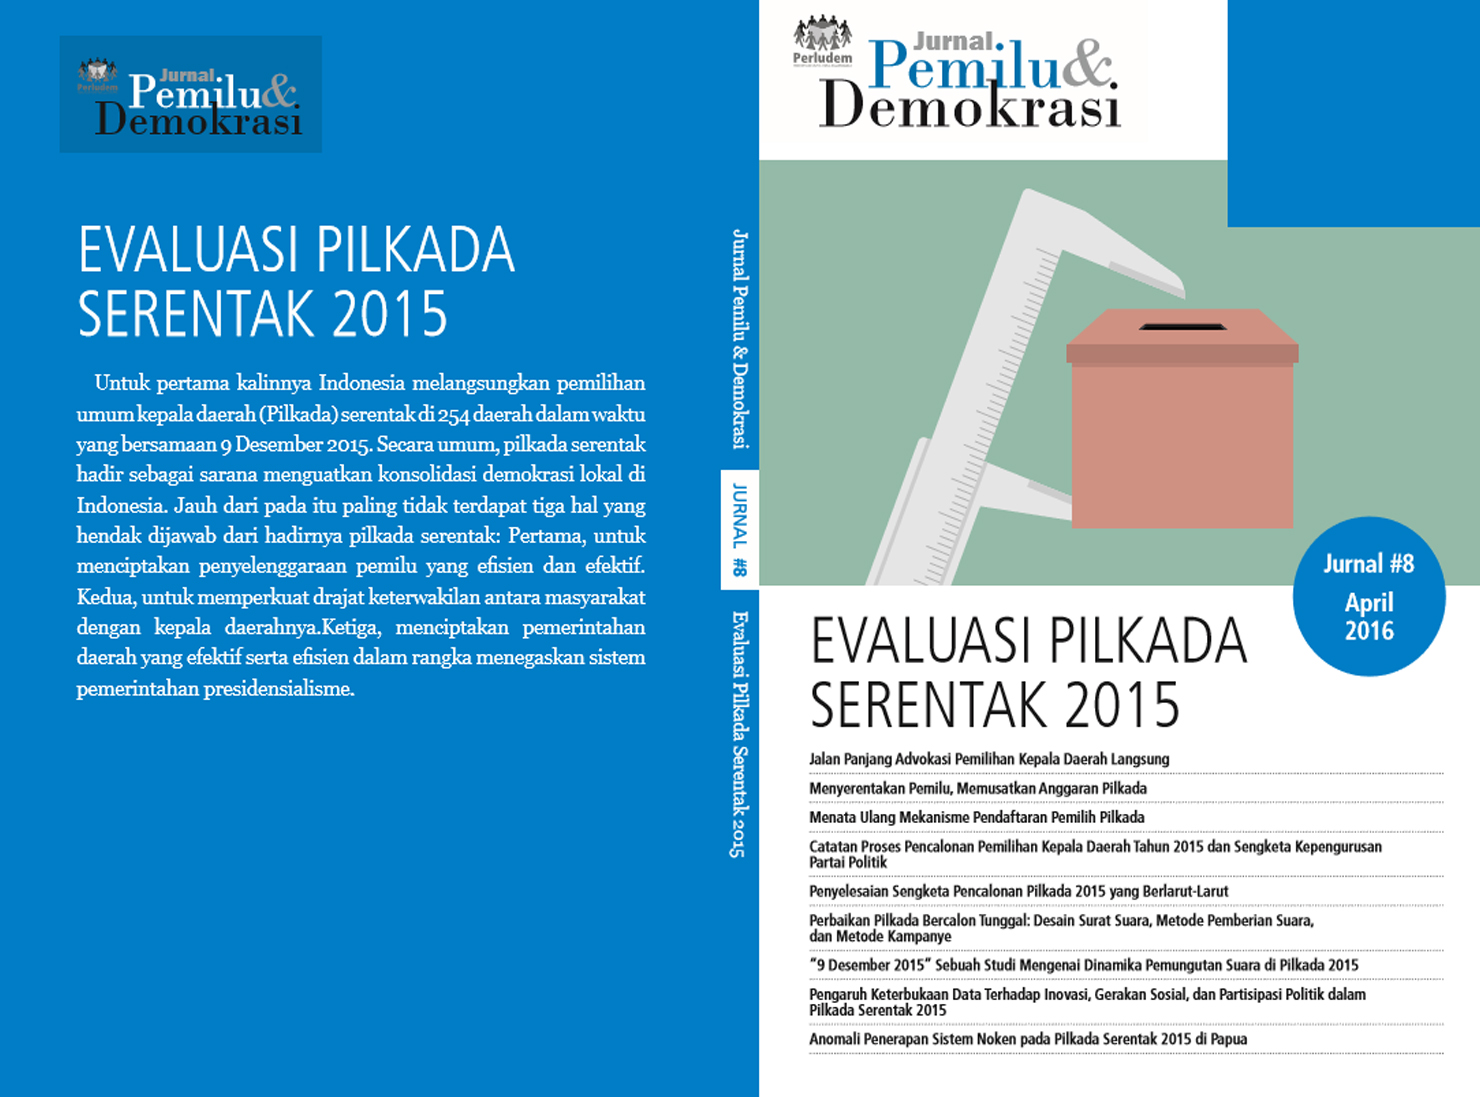 20160330_104351_cover jurnal 8